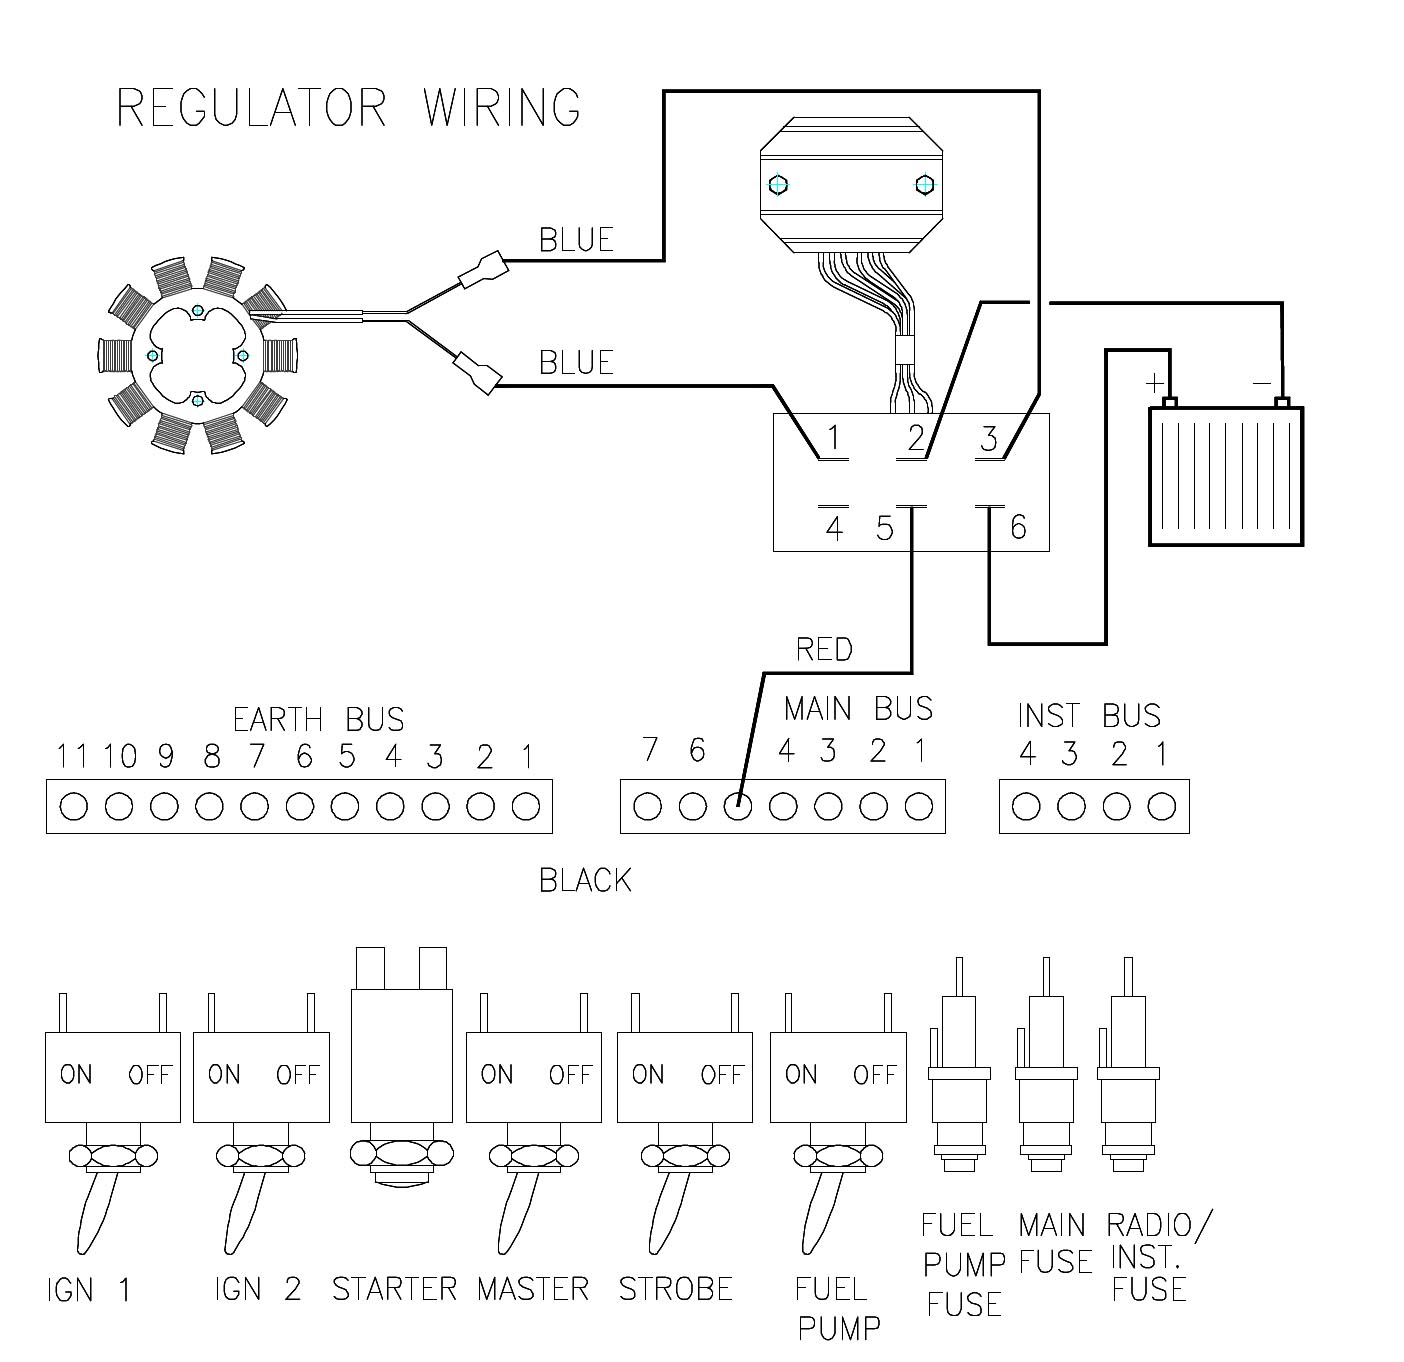 aeroelectric-list digest sun 07/20/08,Wiring diagram,Wiring Diagram Cessna 12 Volt Alternator